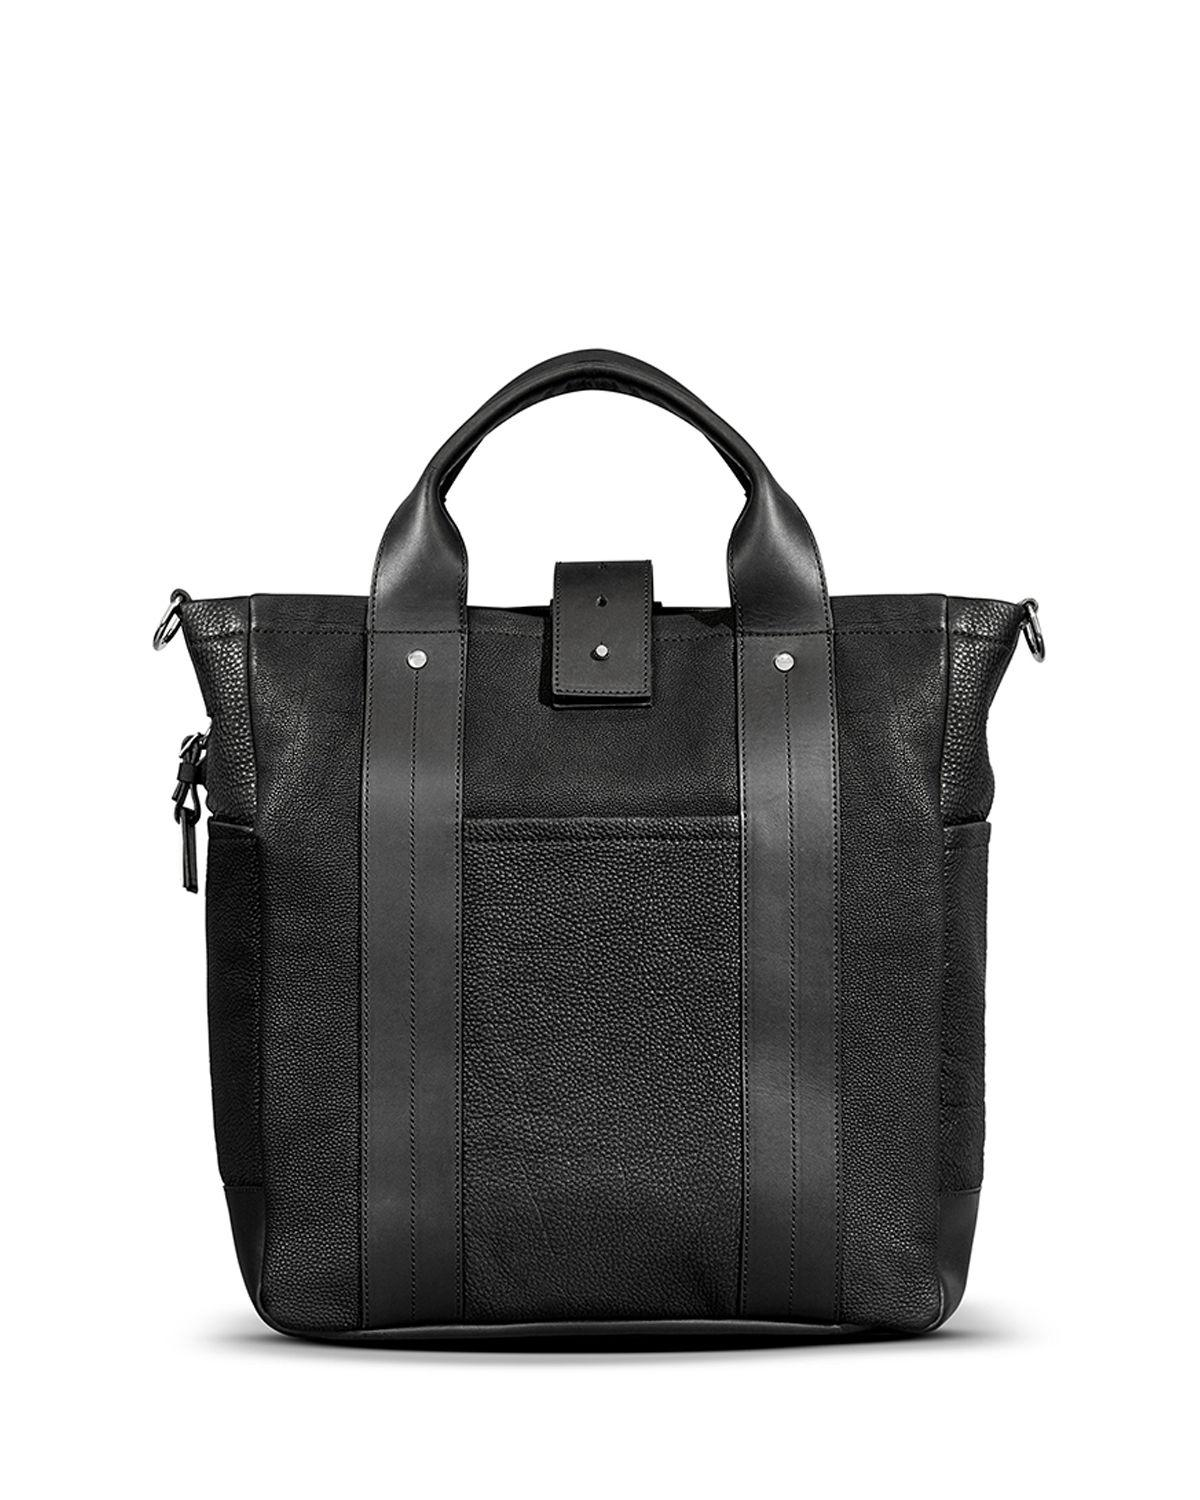 You searched for: mens commuter bag! Etsy is the home to thousands of handmade, vintage, and one-of-a-kind products and gifts related to your search. No matter what you're looking for or where you are in the world, our global marketplace of sellers can help you .